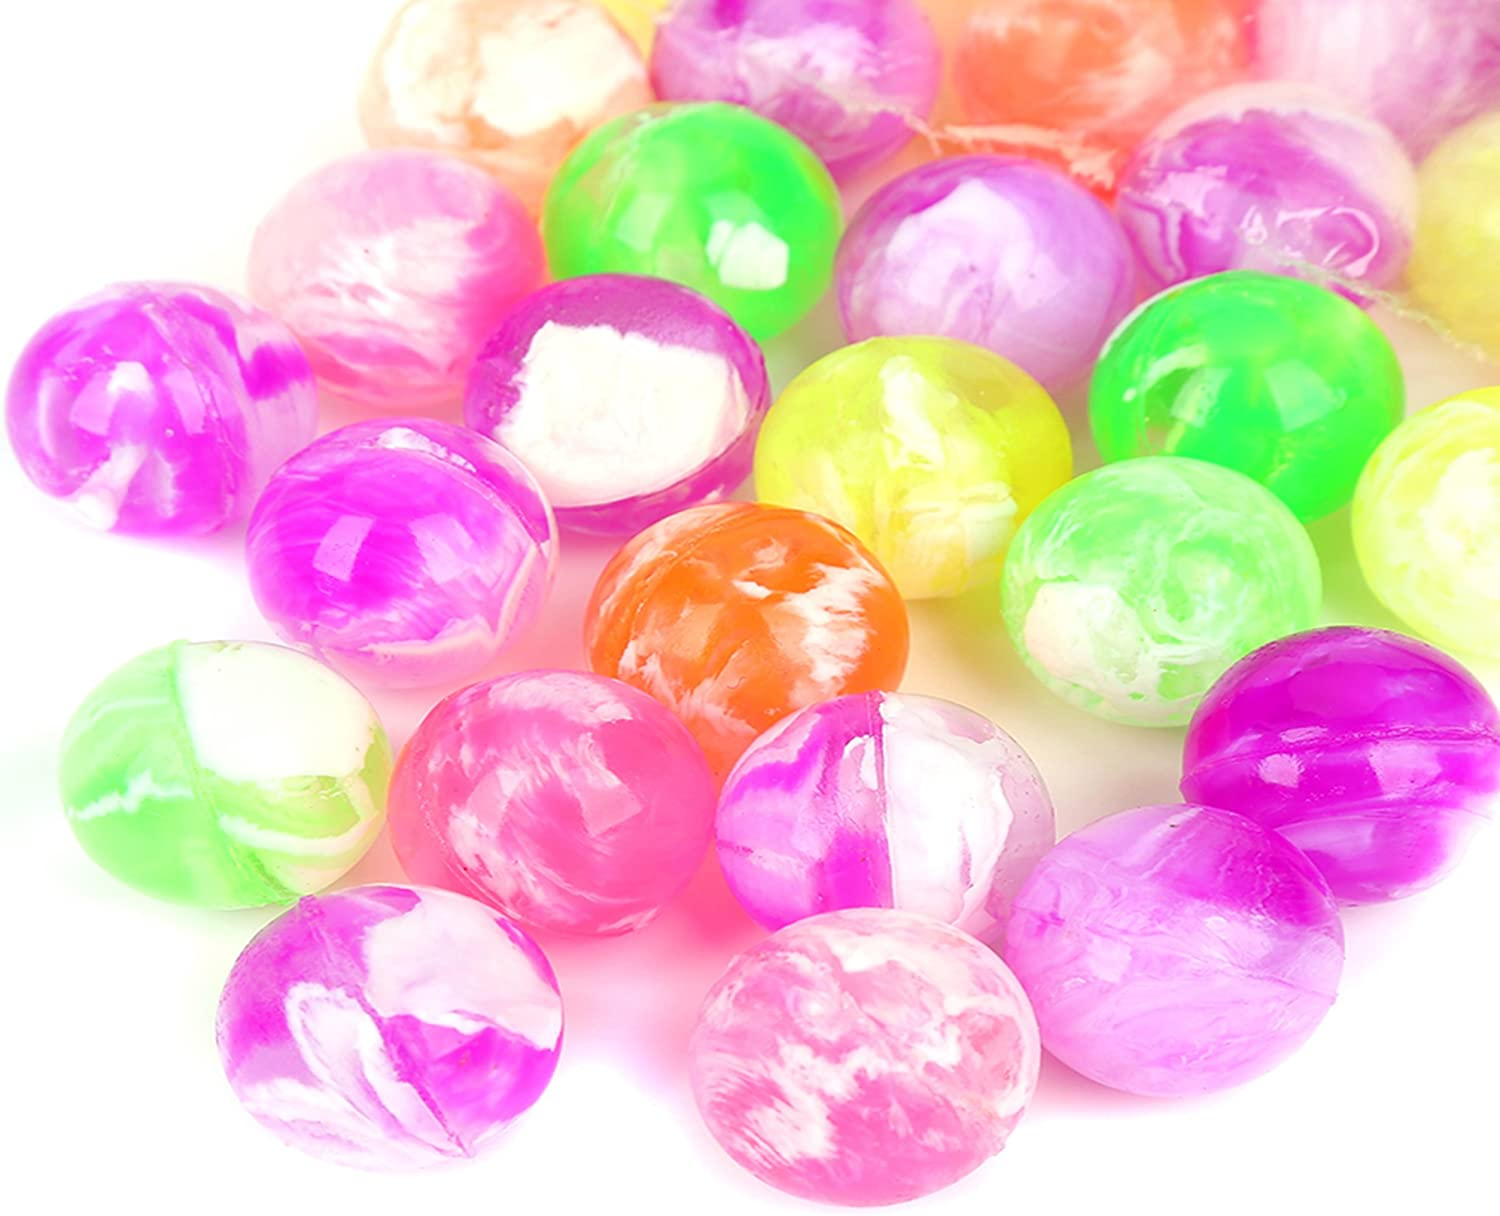 0.75 Inch Bouncy Balls Bulk Party Favors for Kids Fun Central 48 Pieces Assorted Neon Colors